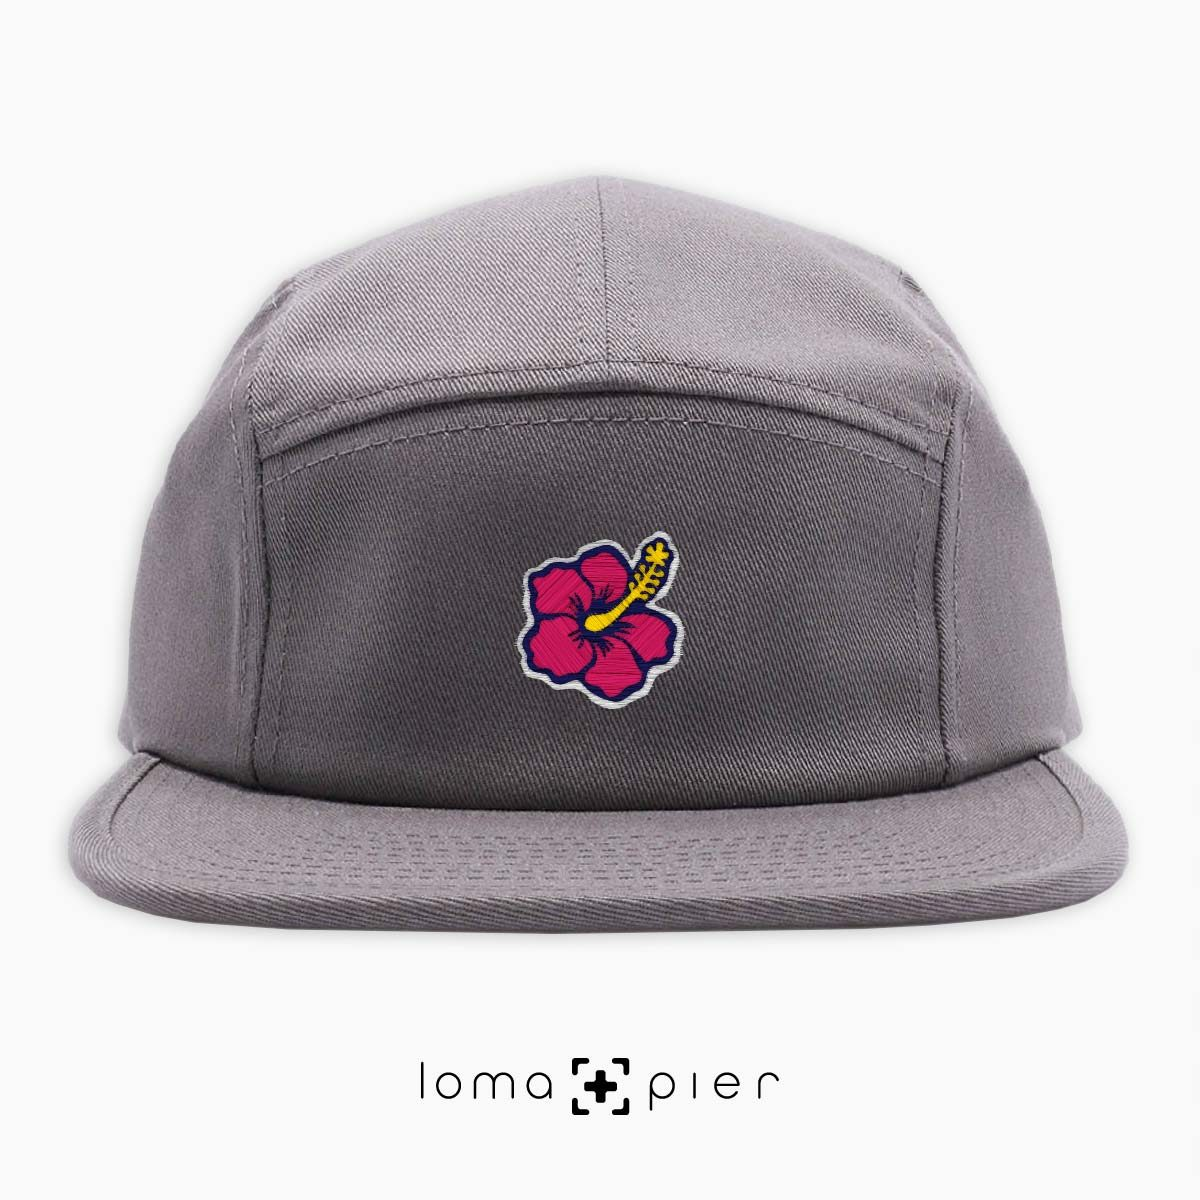 hibiscus hawaiian flower icon 5-panel hat in grey by loma+pier hat store